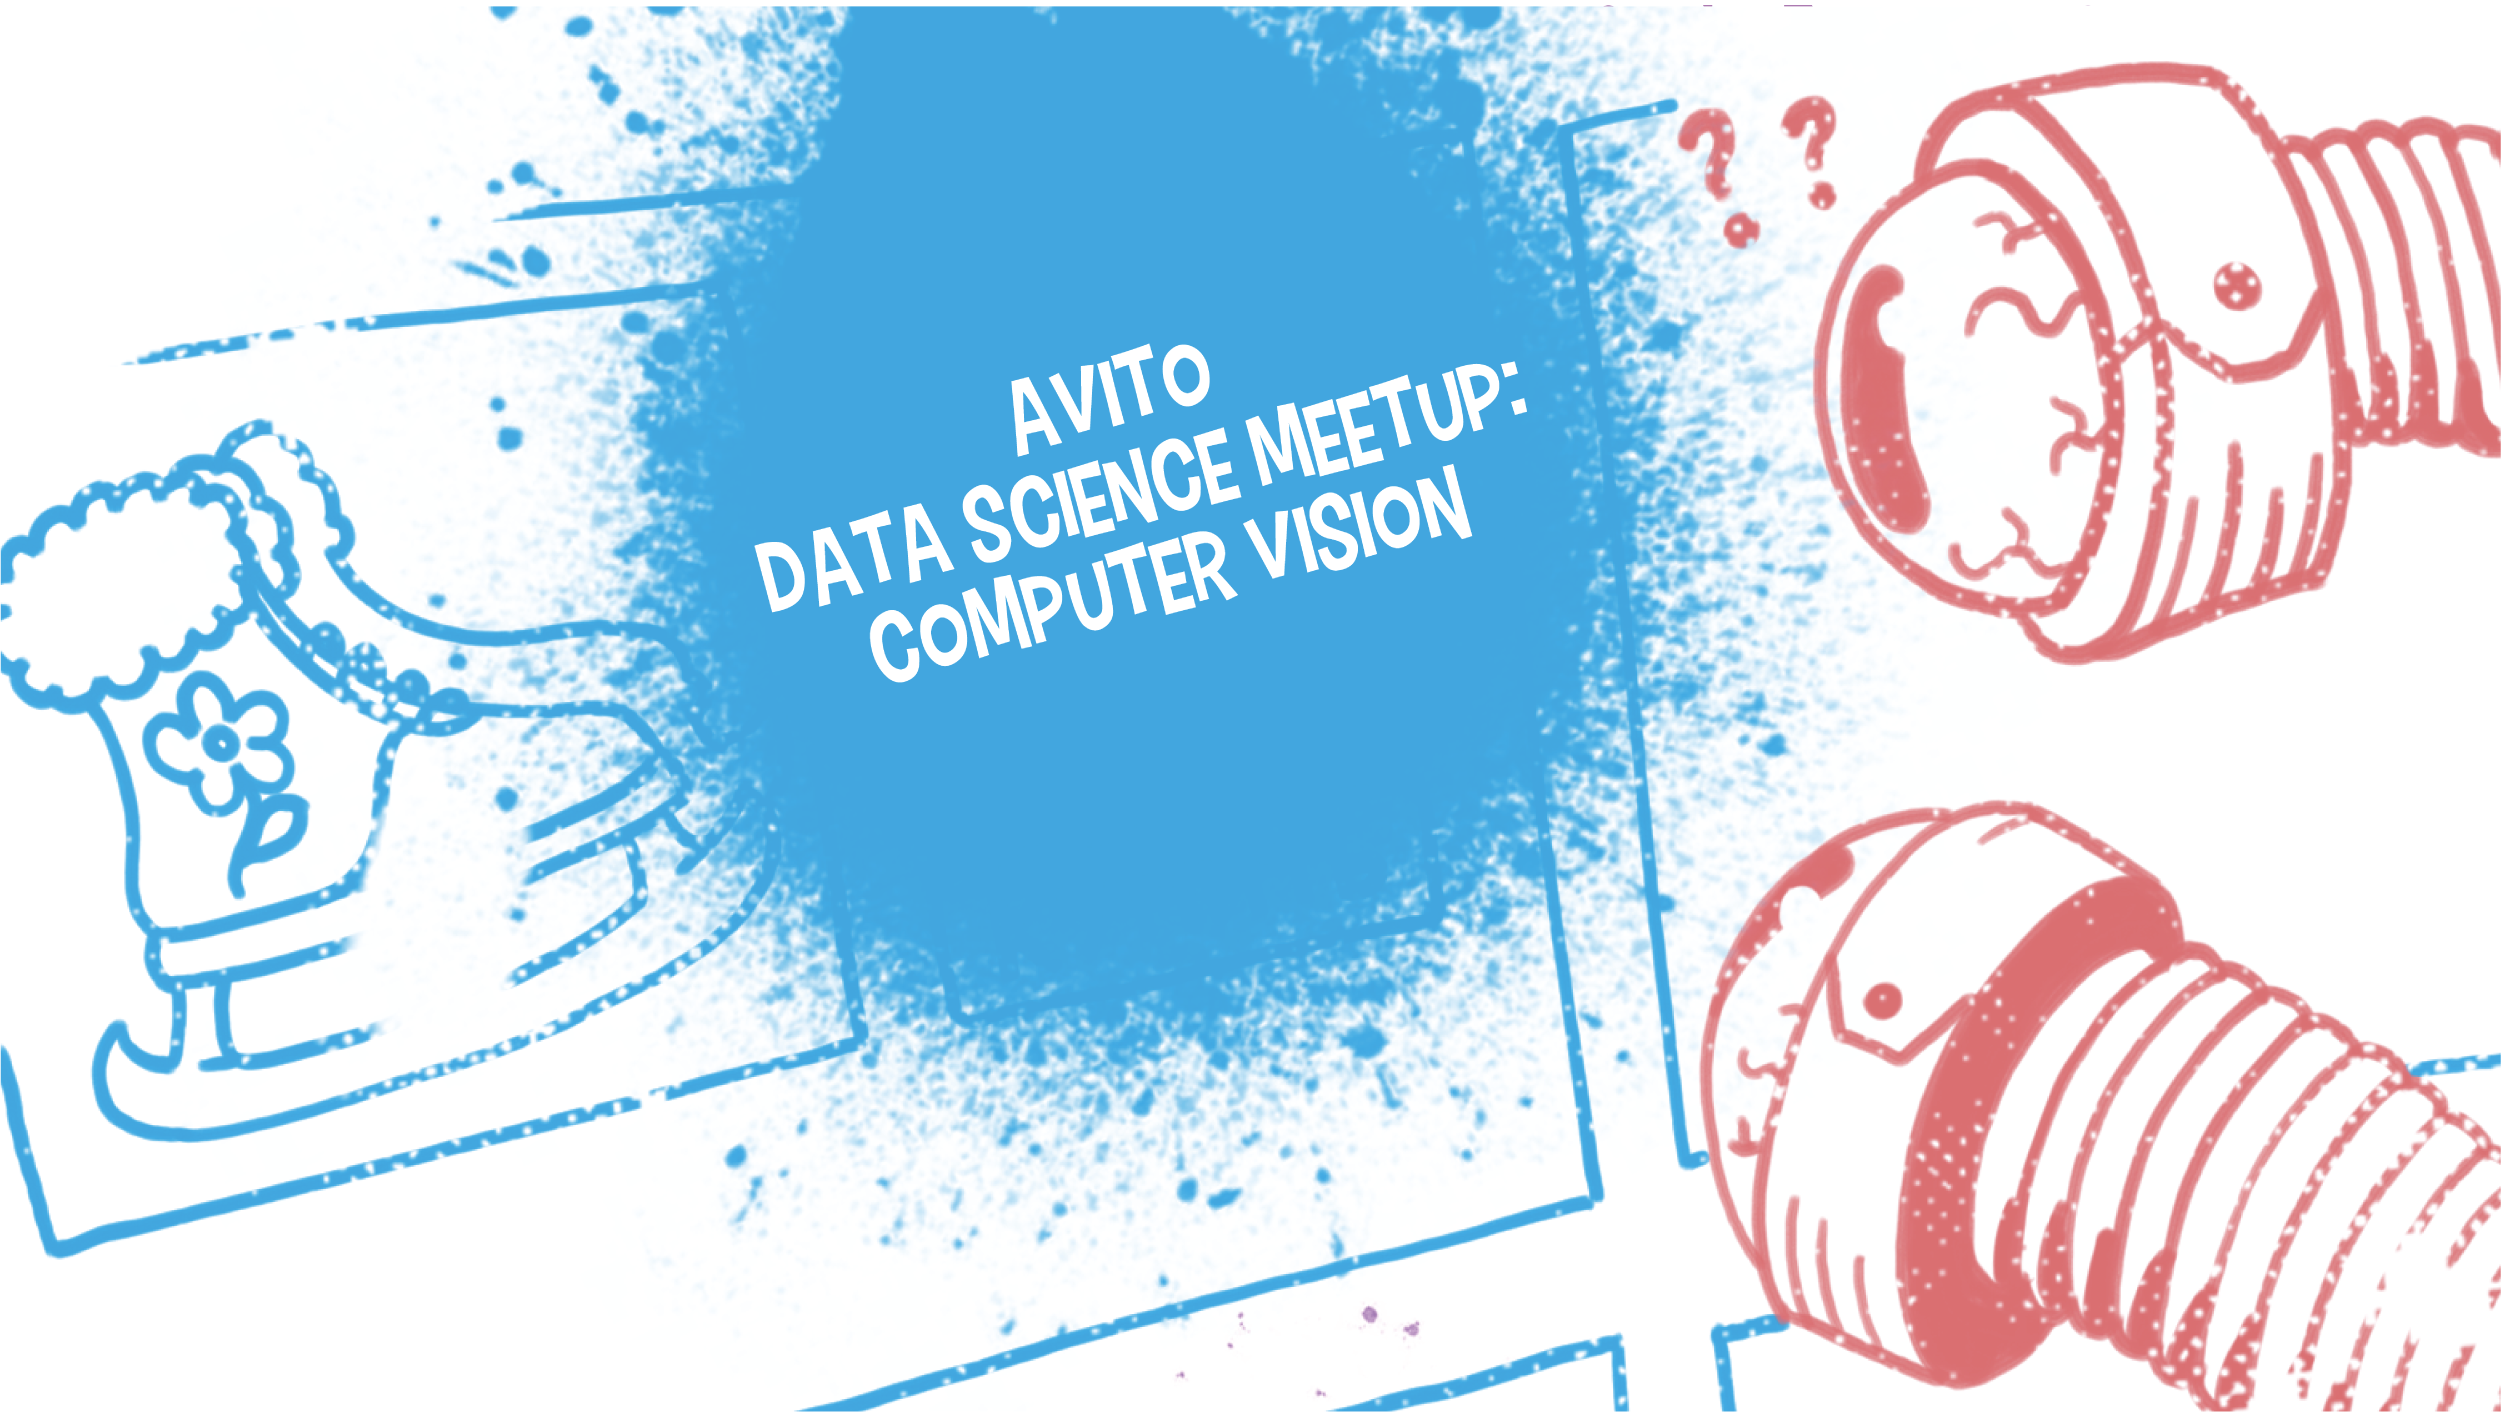 Avito Data Science Meetup: Computer Vision